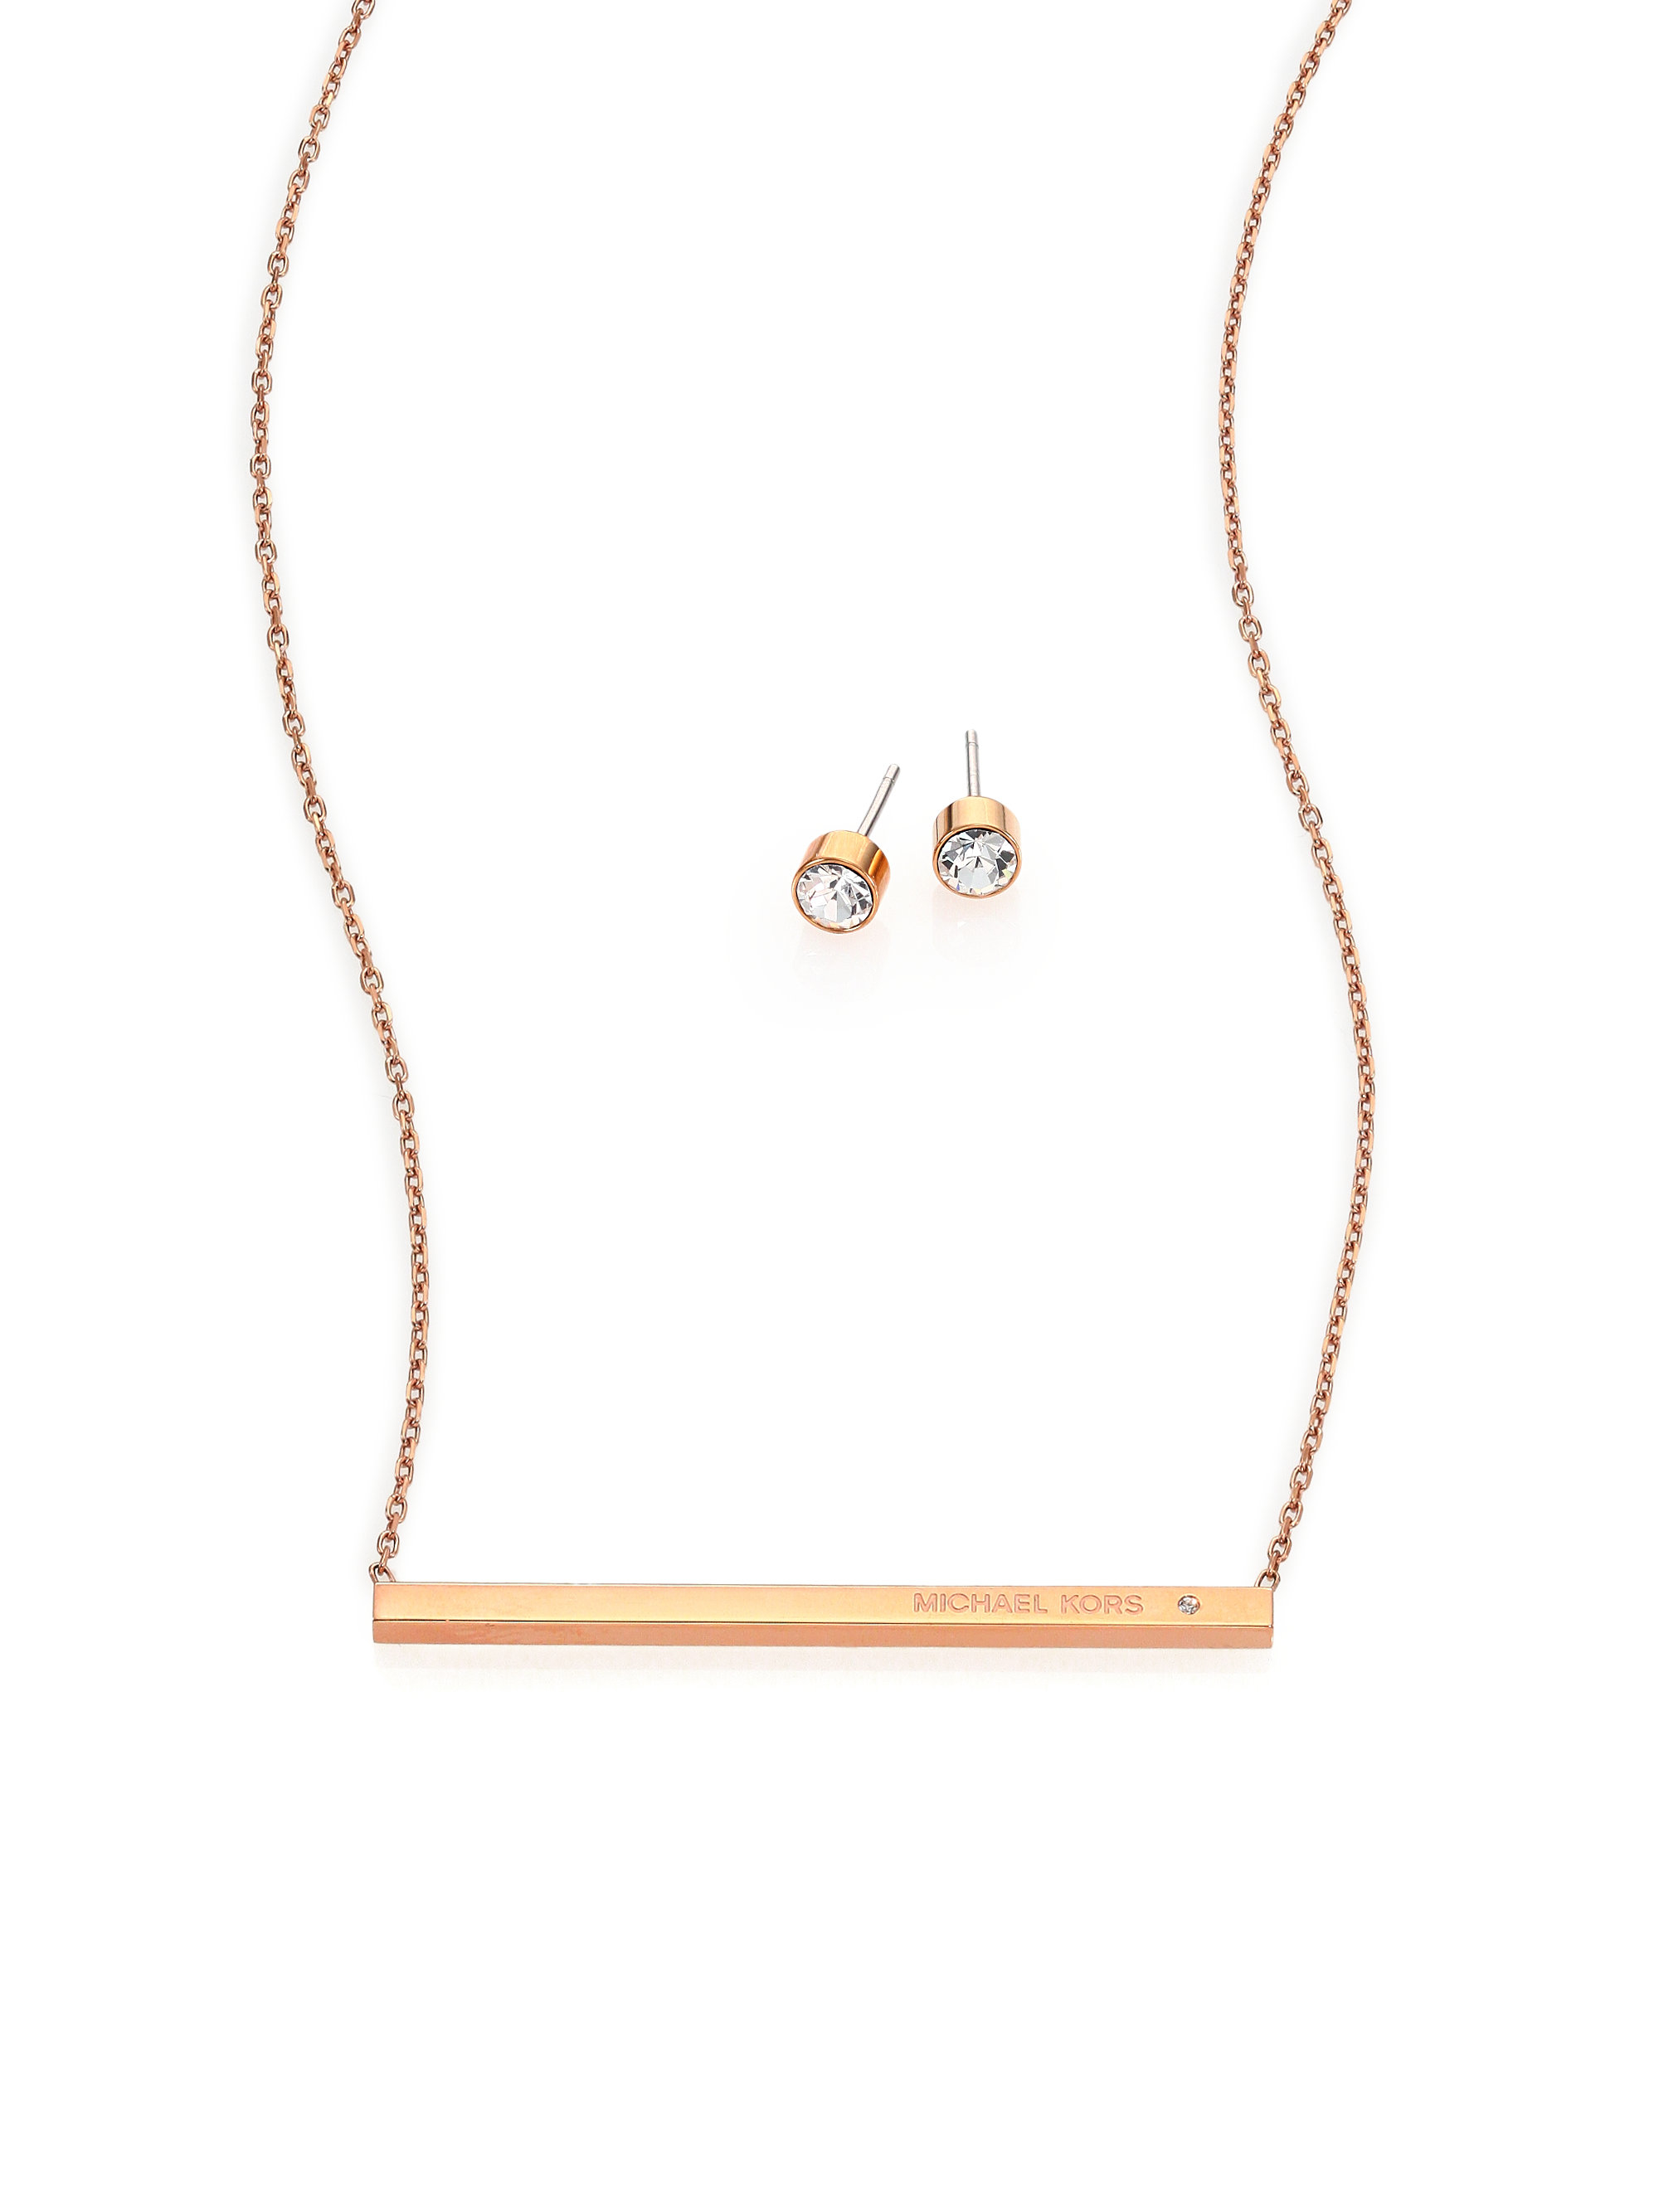 gold bar claire charm necklace pearl with tone pendant dangle s